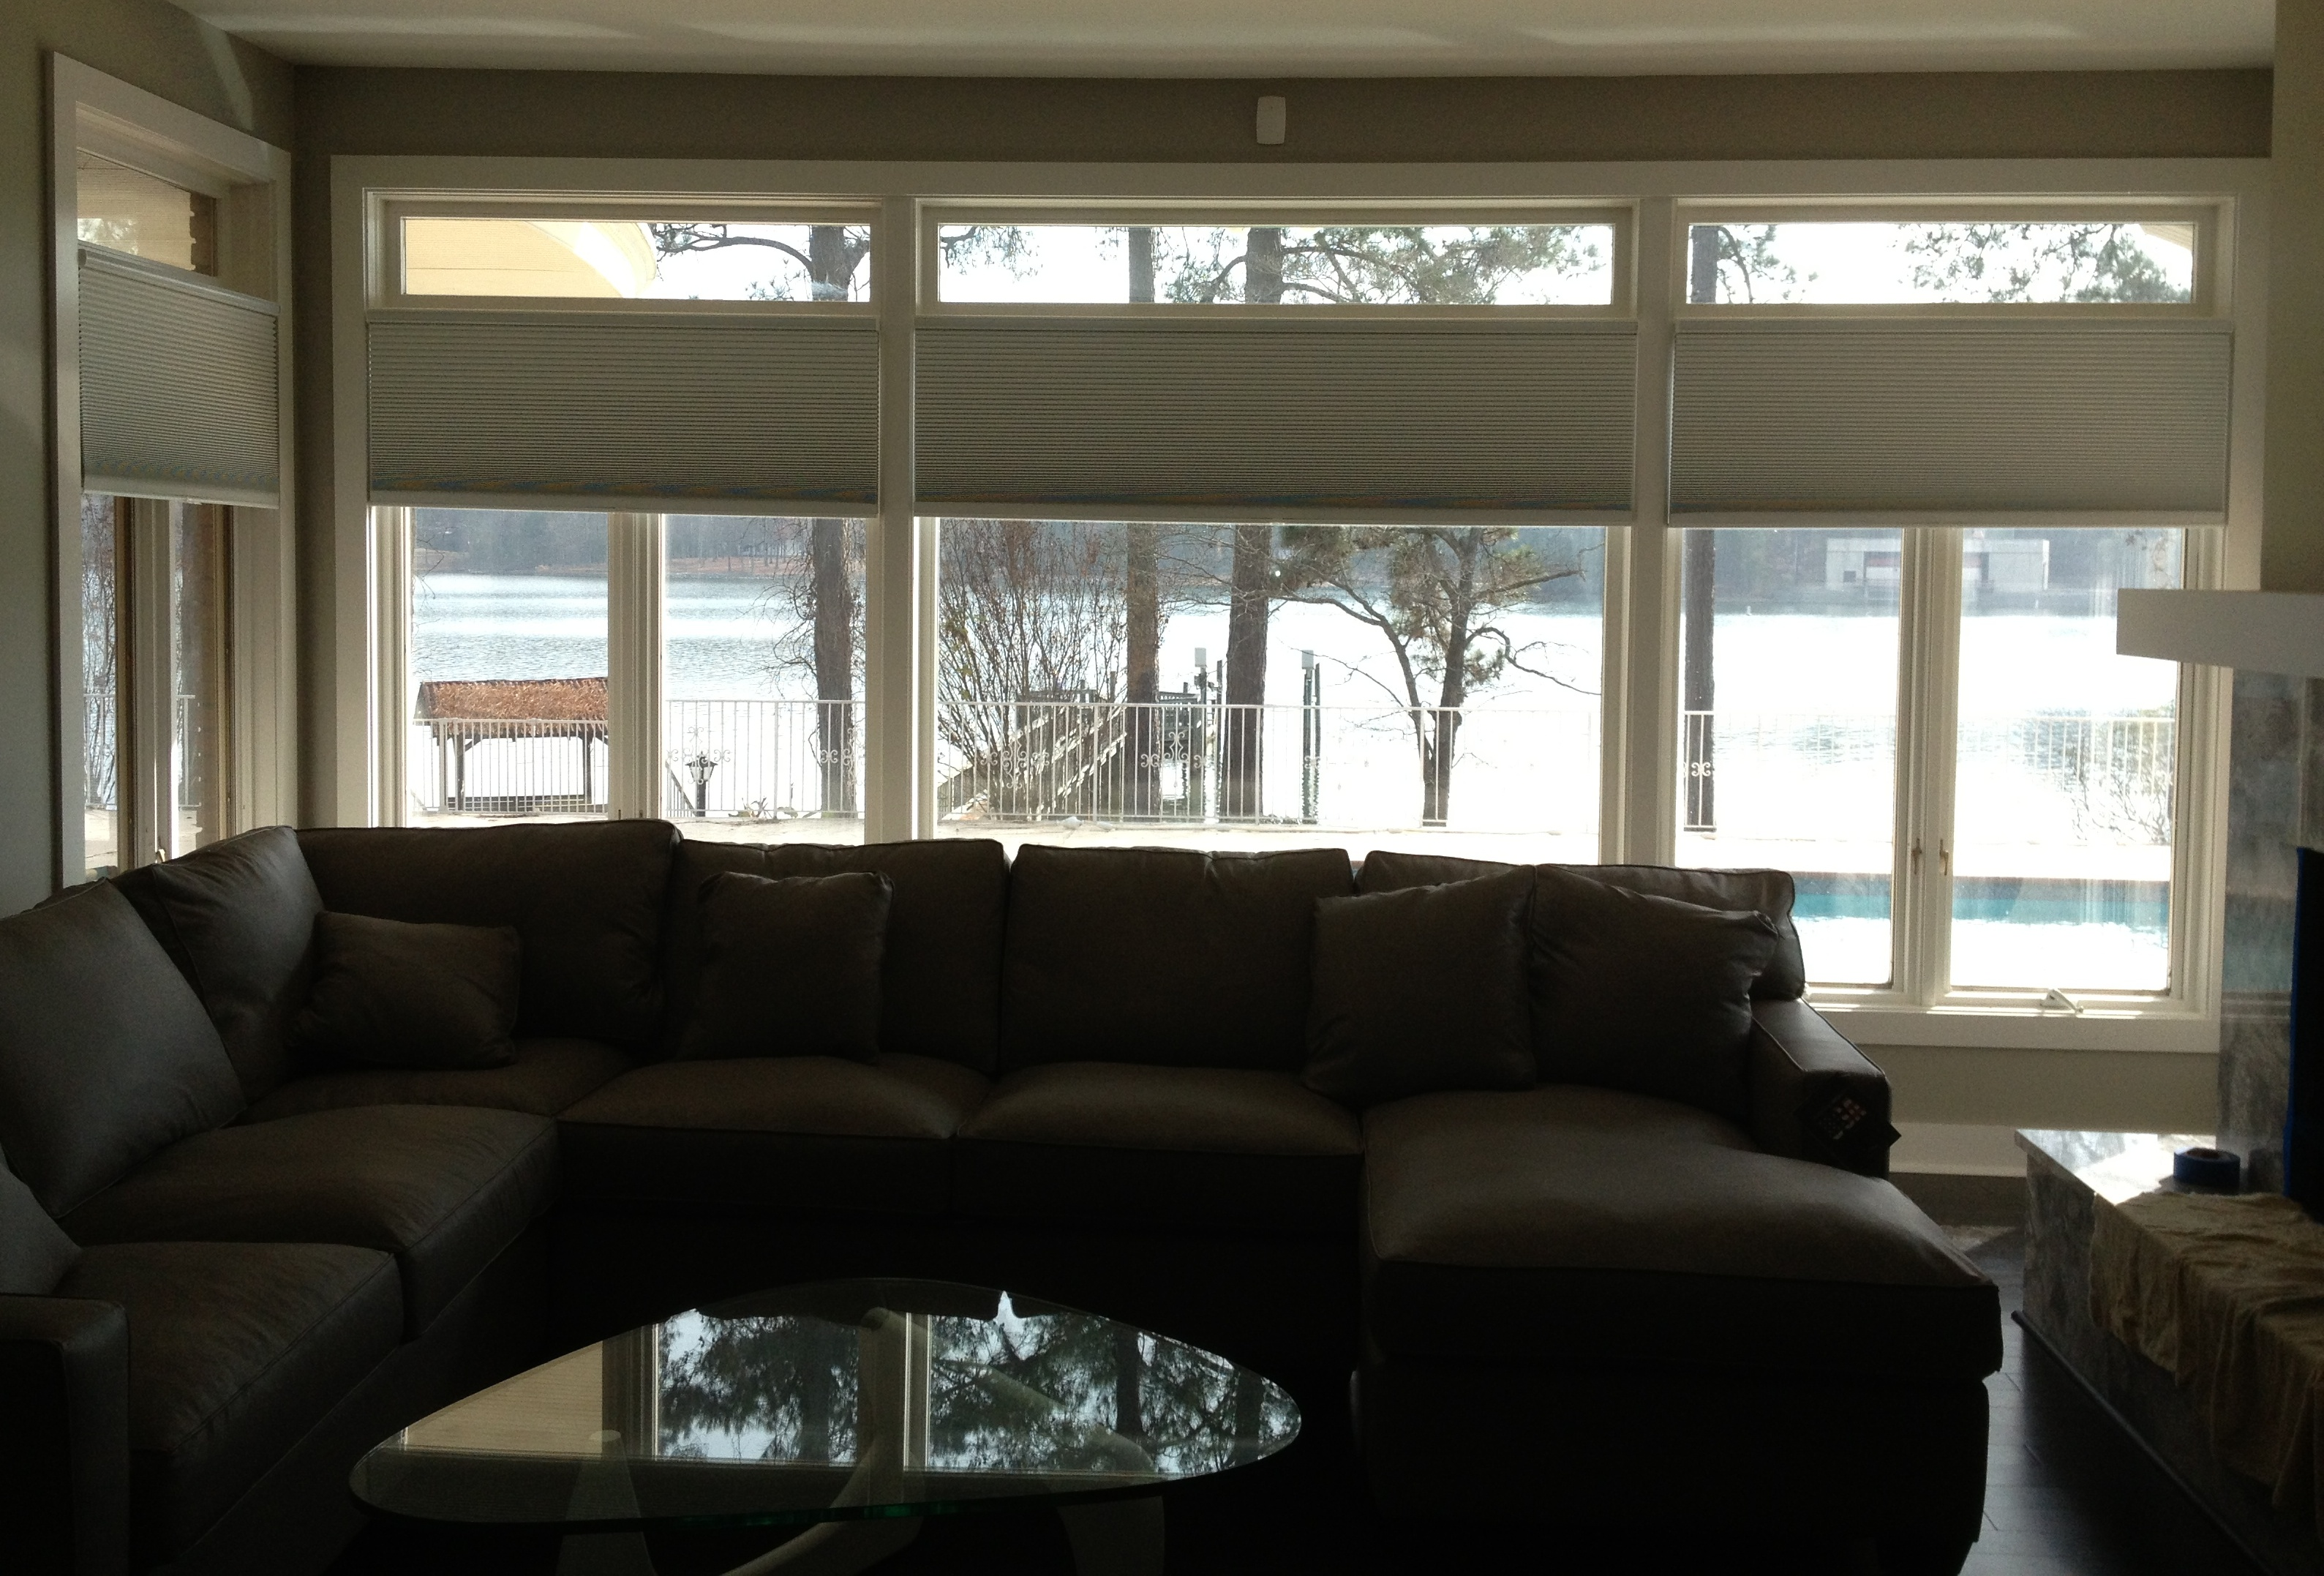 blinds darkening mini room design throughout shades honeycomb lowes charming interior